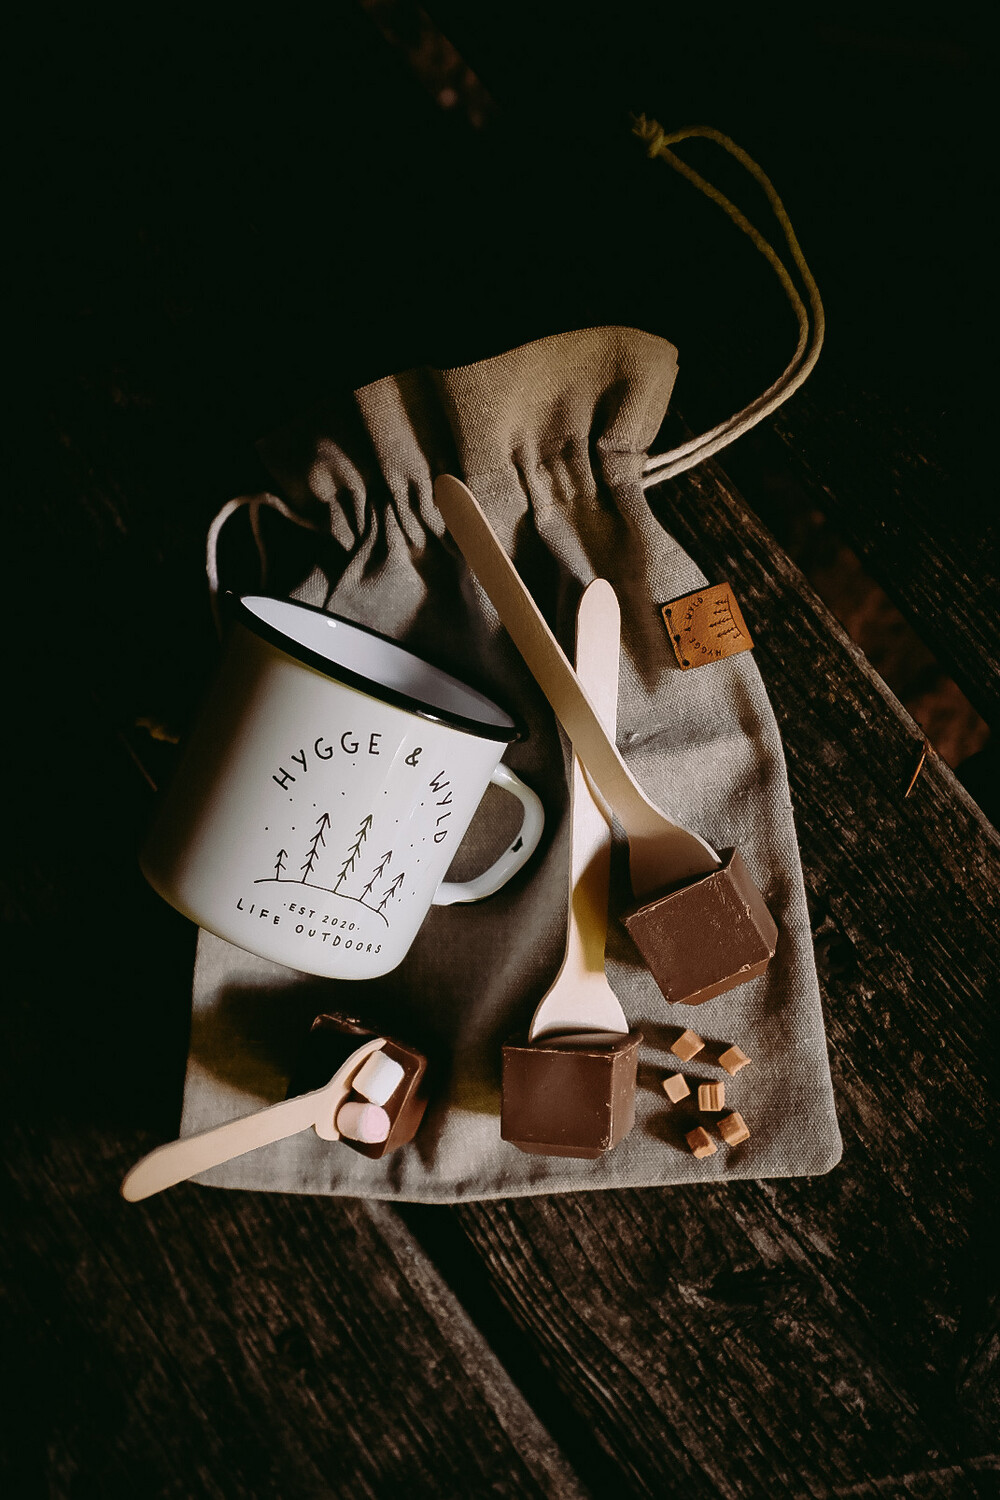 The Hot Chocolate Lover's Gift Bag